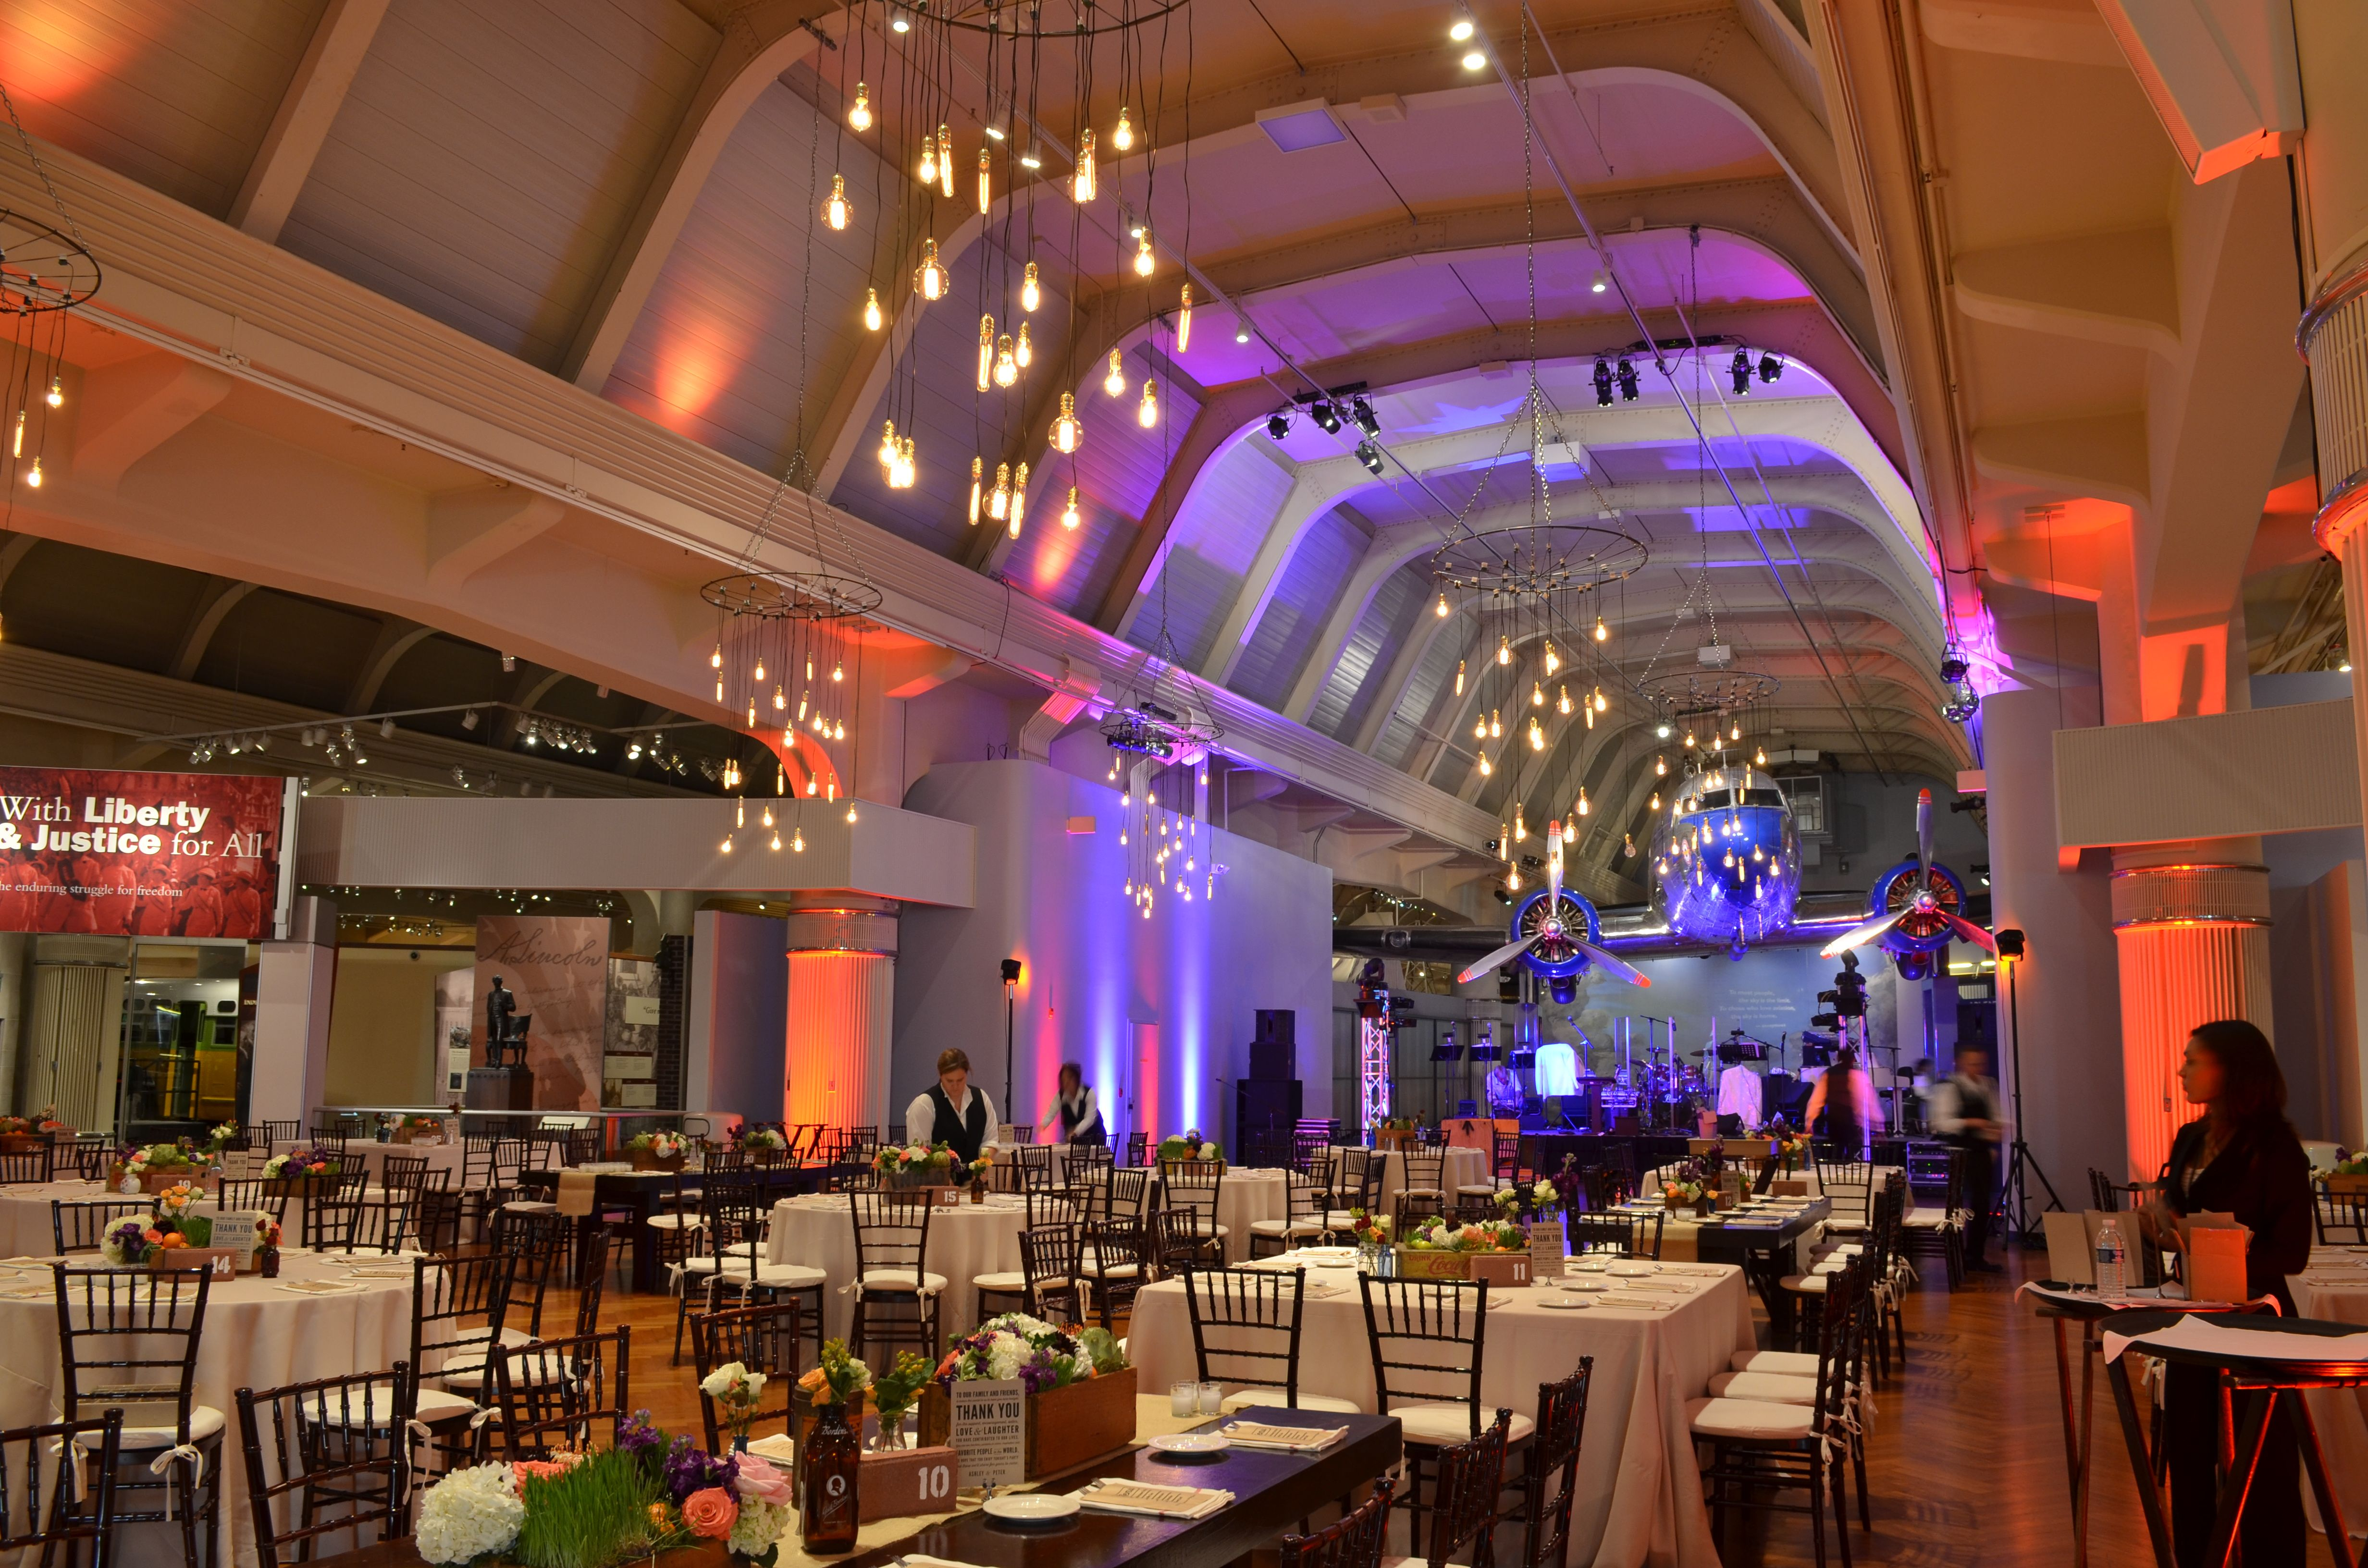 Wedding Venues Custom Edison Bulb Chandeliers Hung From Henry Ford Museums Ceilings